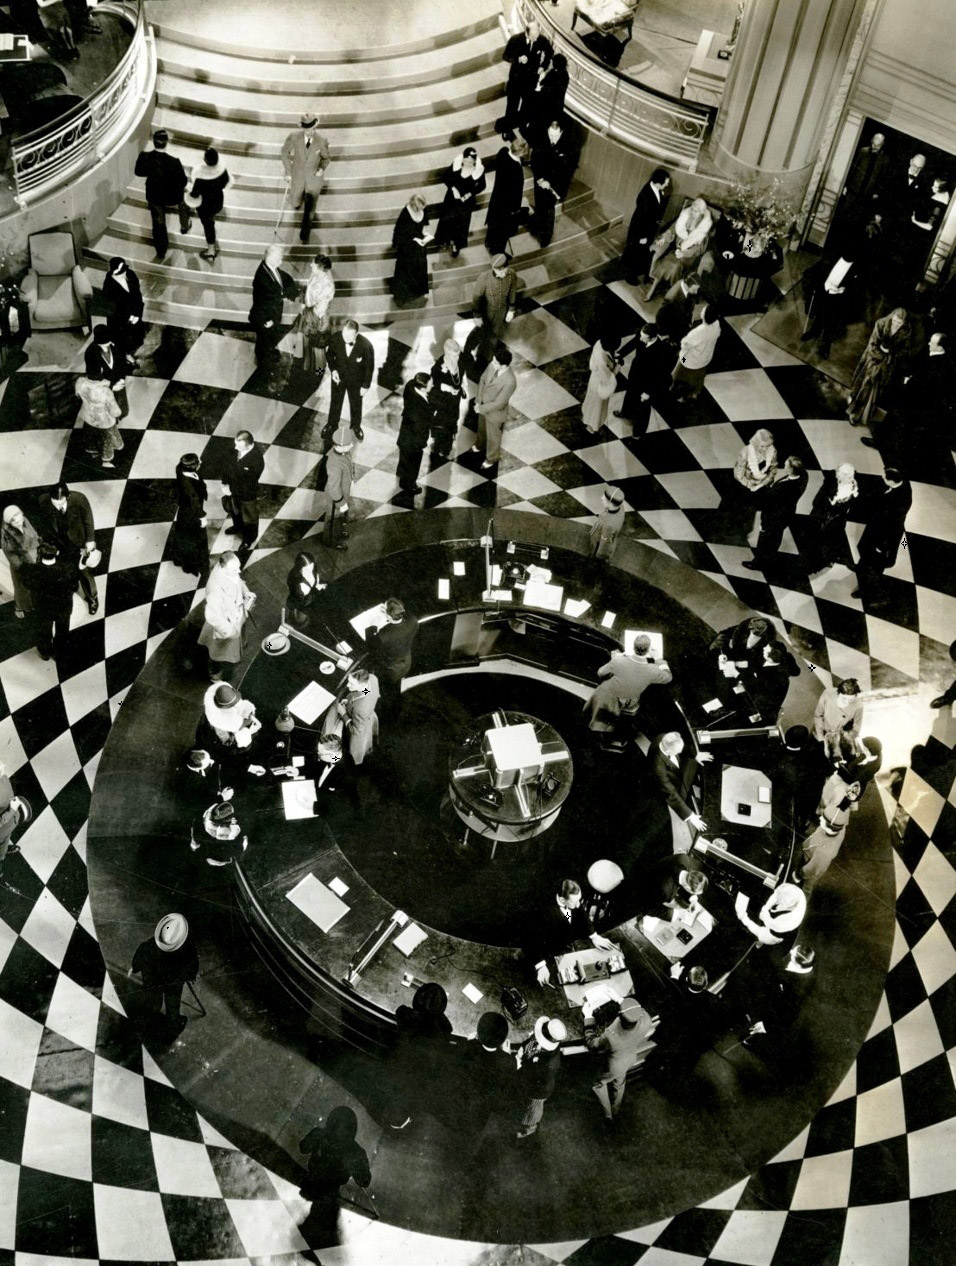 Grand Hotel lobby from Grand Hotel (1932). MGM